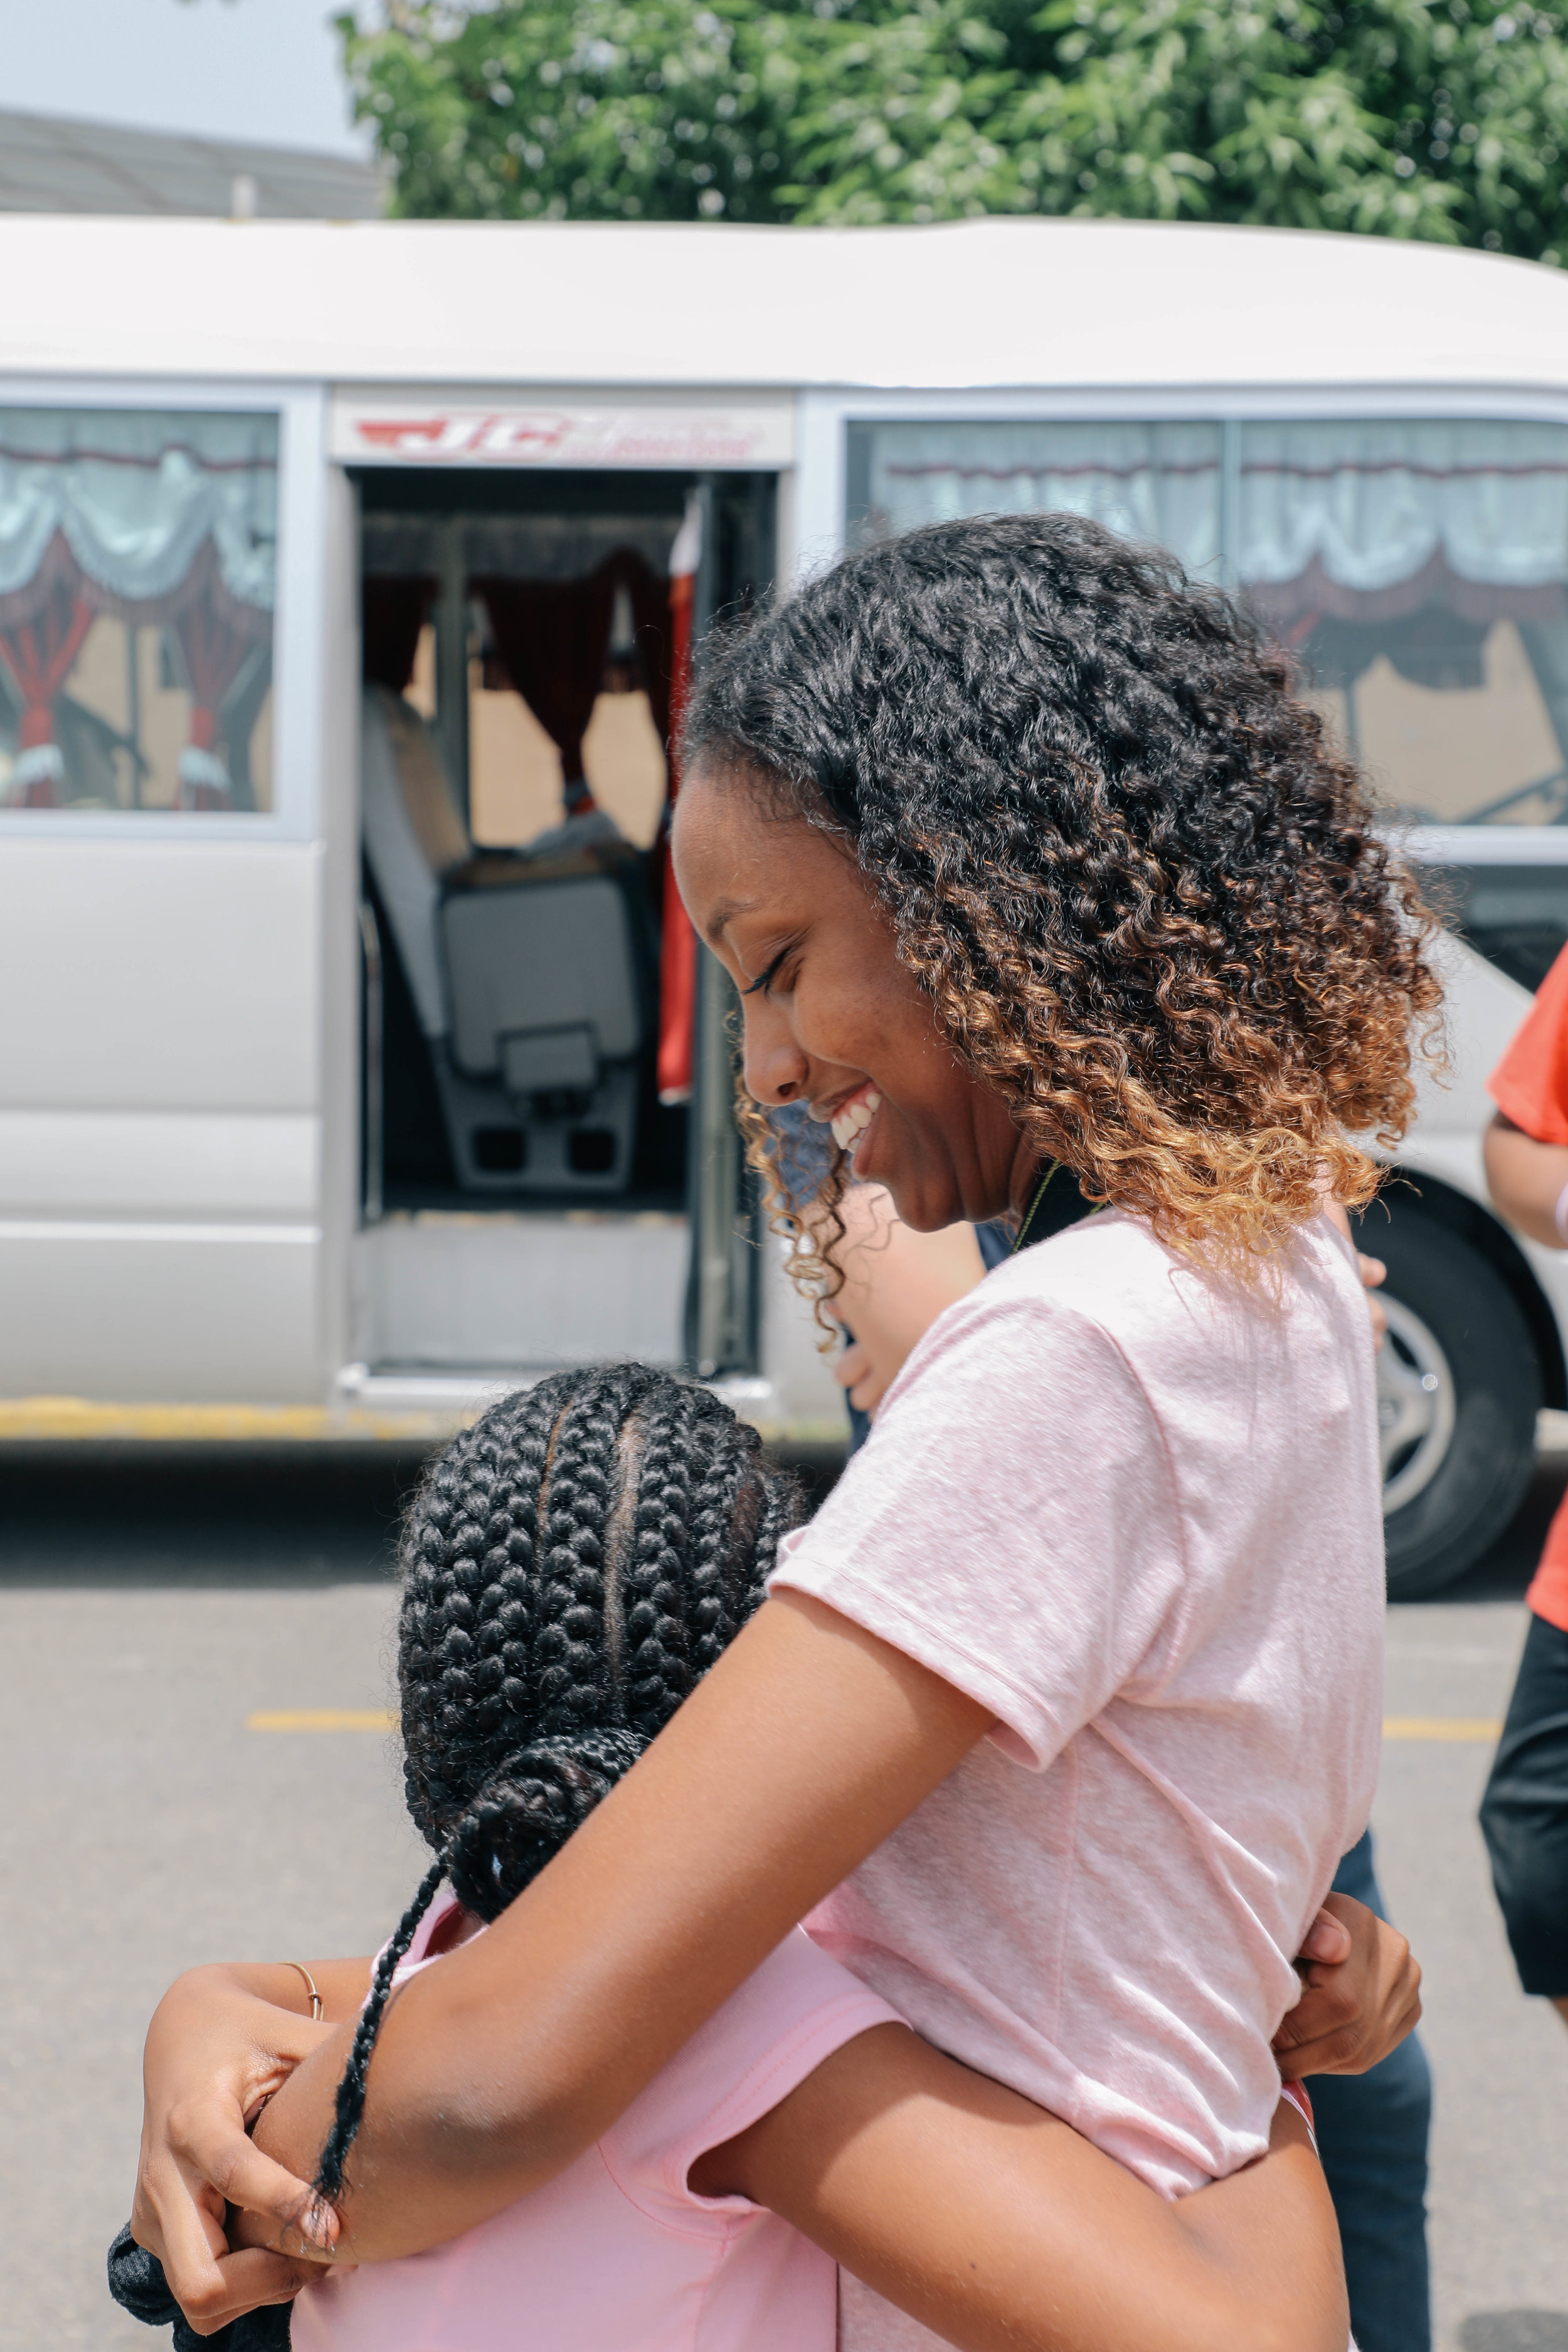 20180907-DominicanMissions-1010.jpg